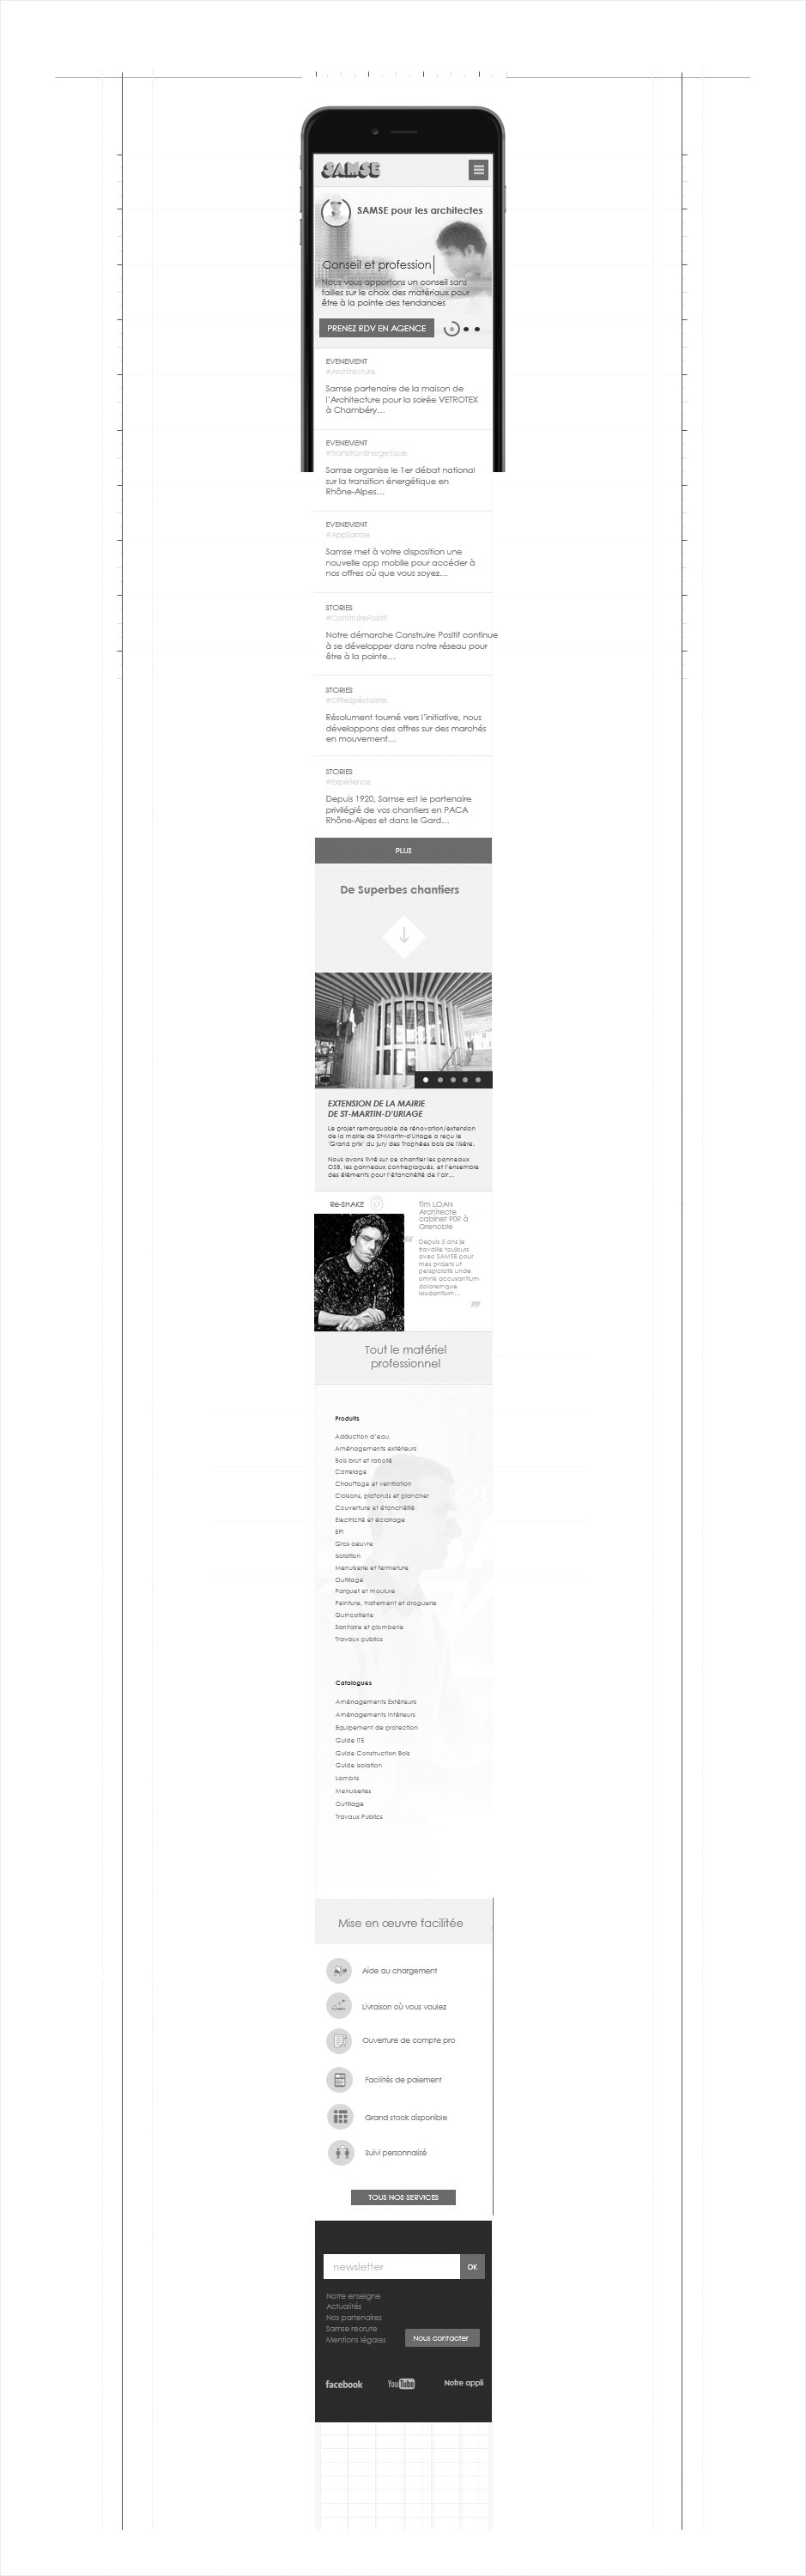 page métier mobile wireframe samse